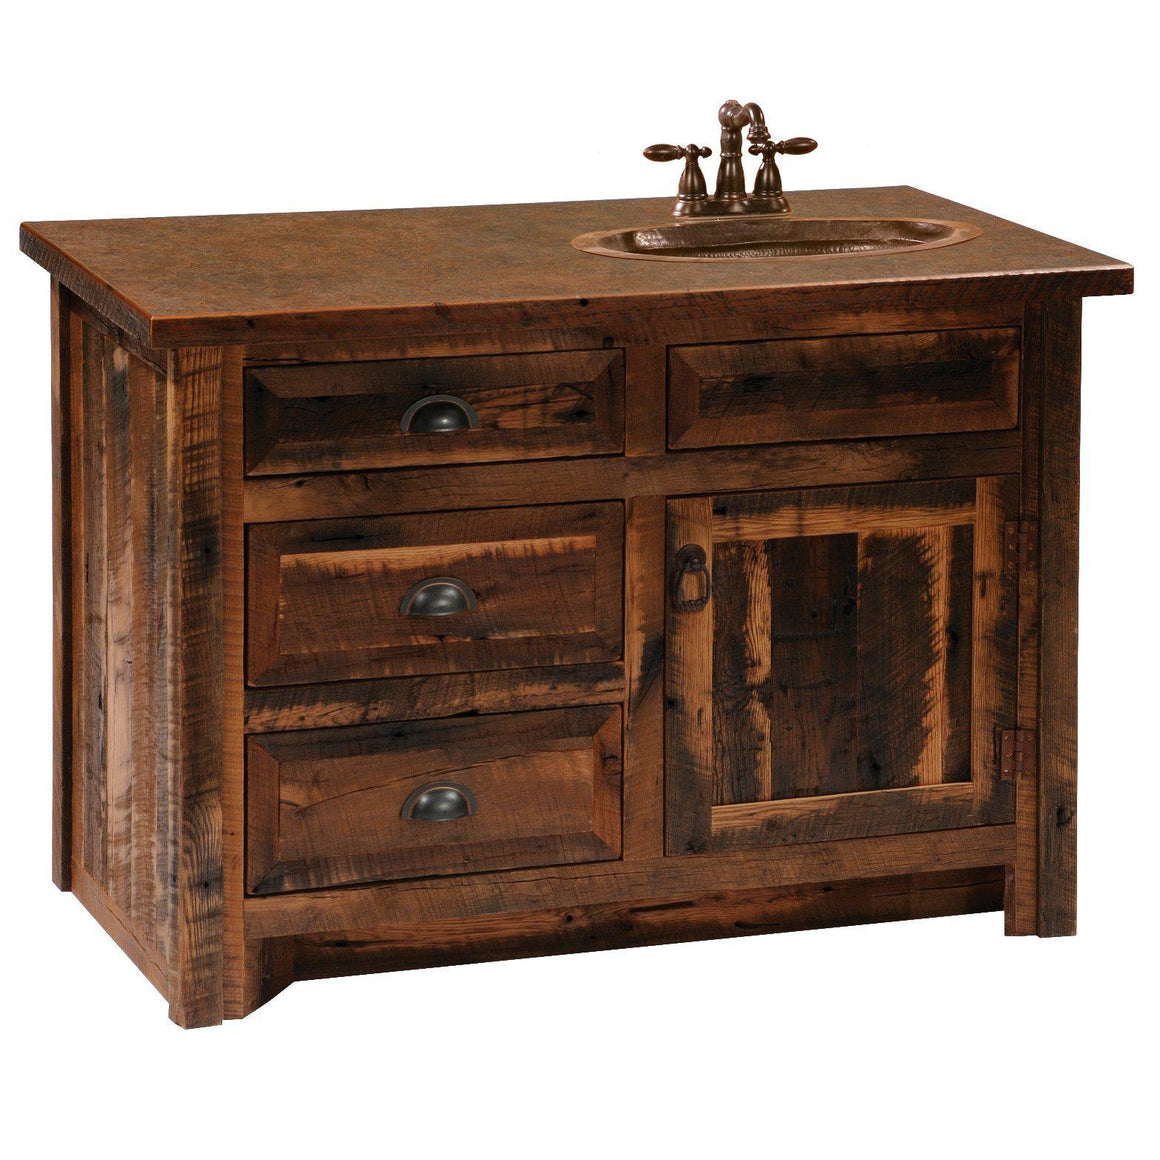 Authentic Barn Wood Vanity - Custom Sizes - Sink Position Options - Rustic Deco Incorporated